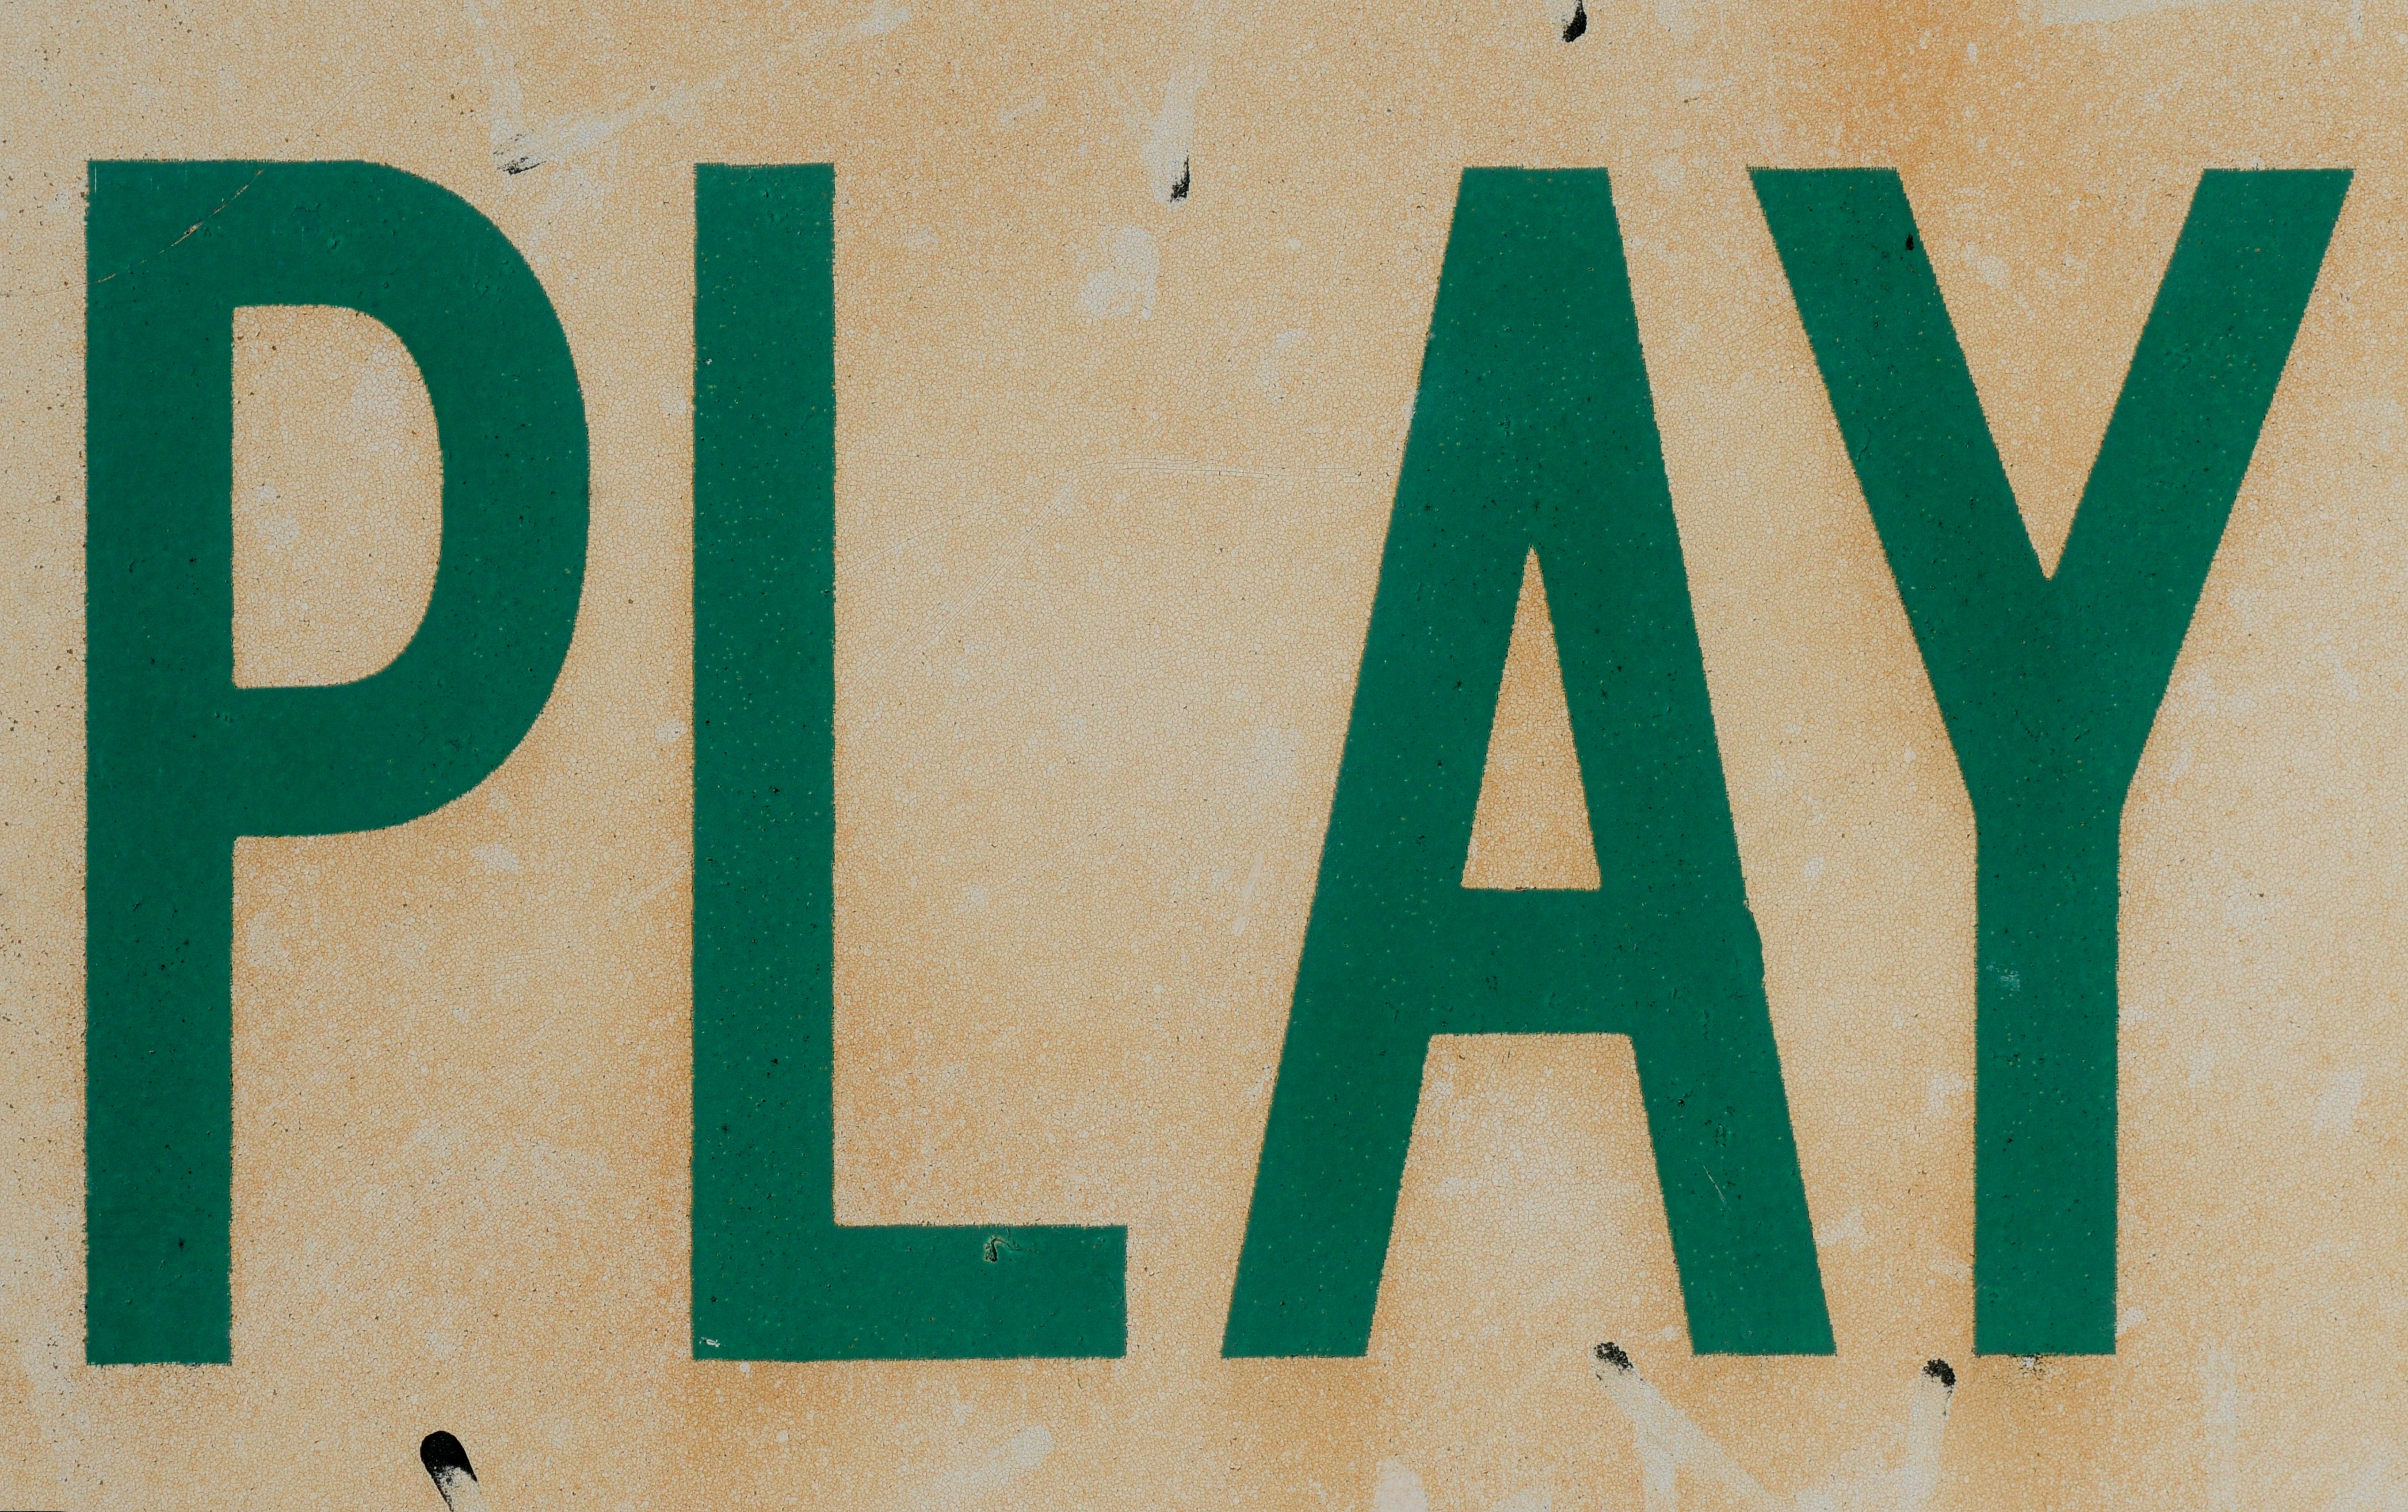 Play text